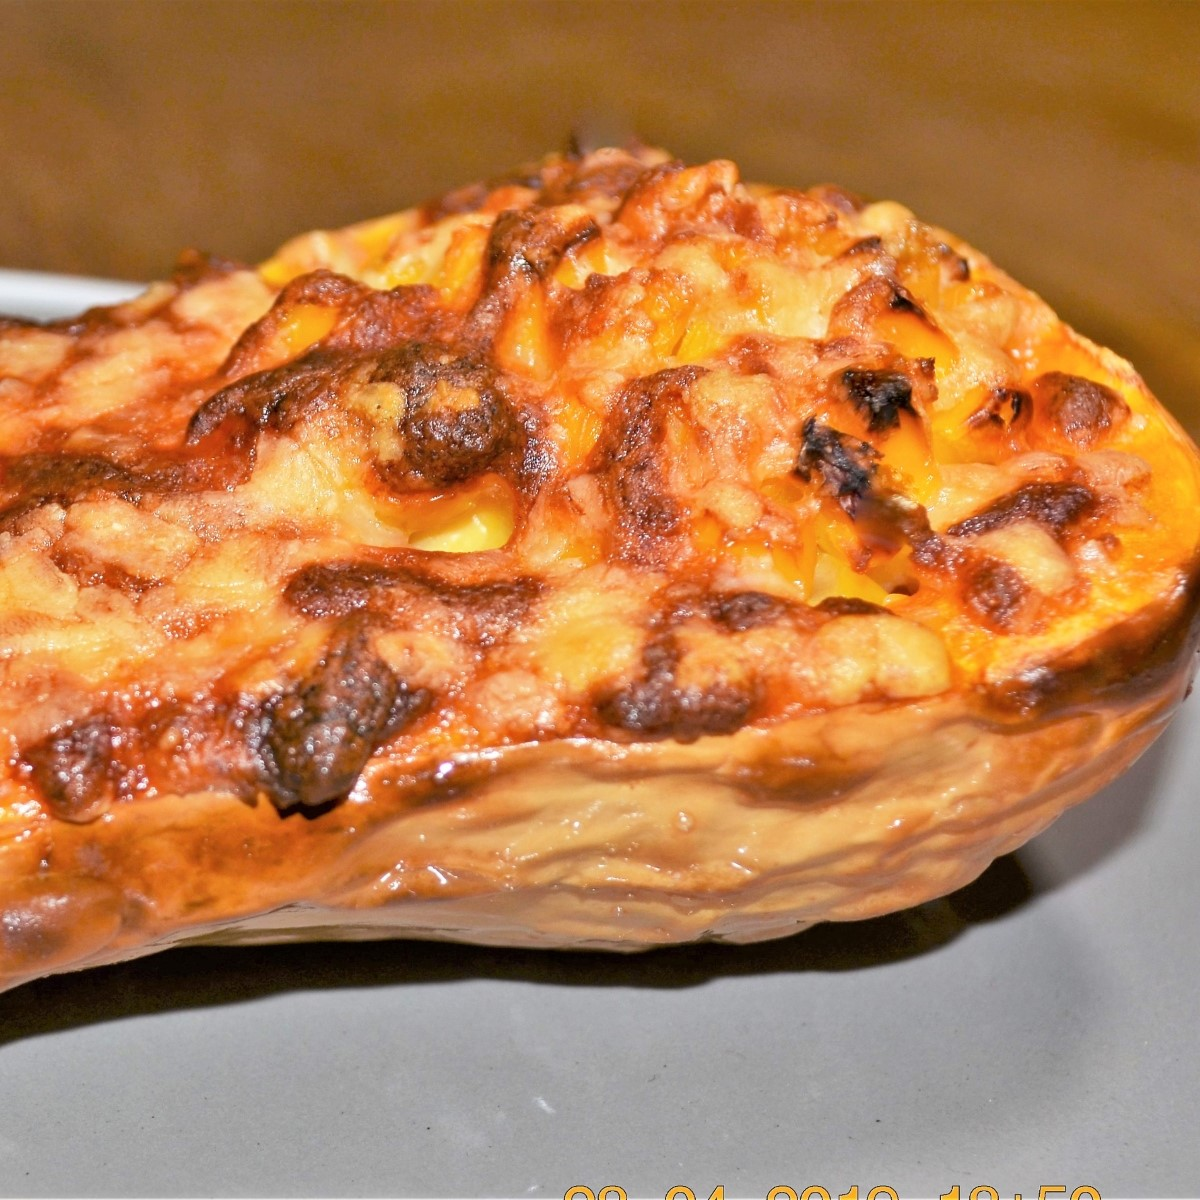 Half a baked butternut, stuffed with cheese and corn, on a plate.